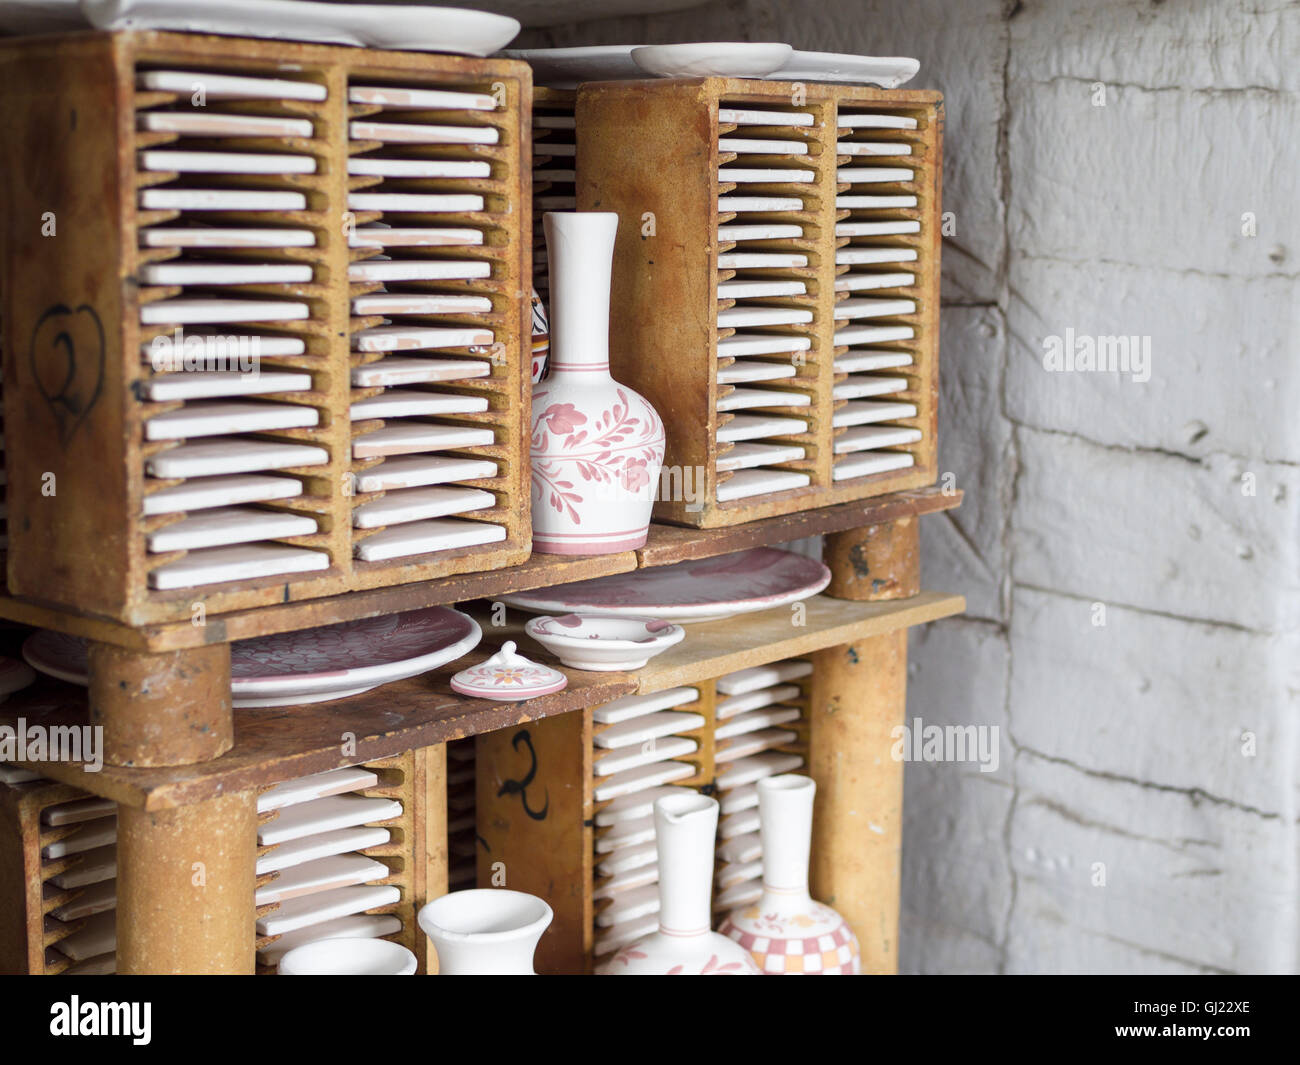 Ceramics Ready for Firing. Detail of a batch of pottery stacked inside a large furnace ready to be glazed at Ceramic - Stock Image